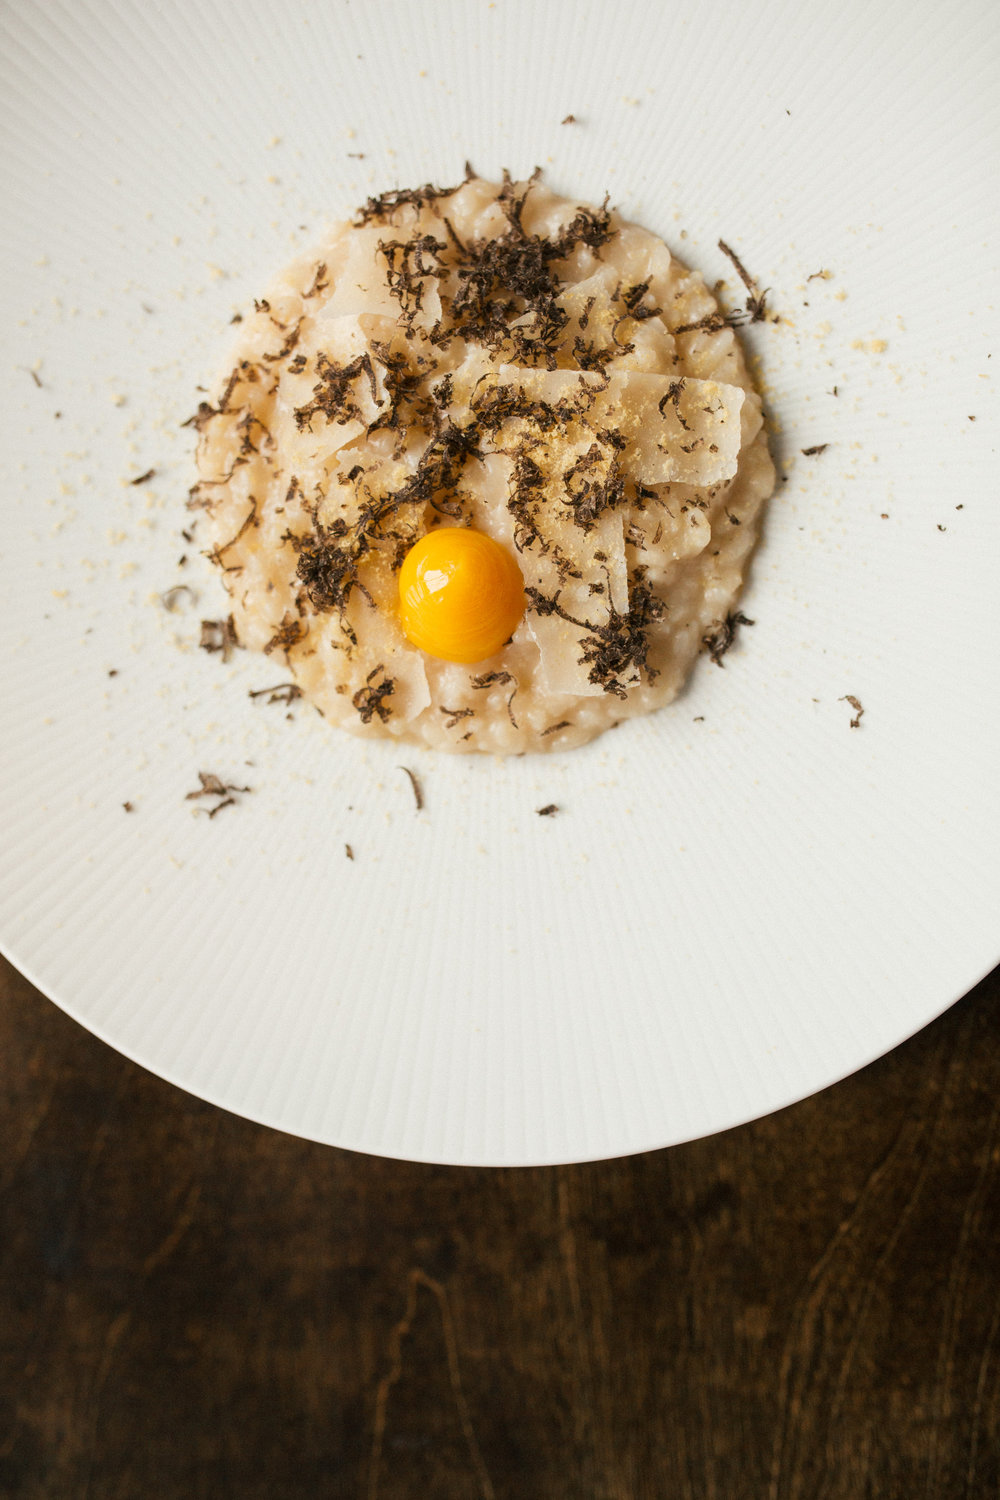 chicago food photography // entente // sandy noto